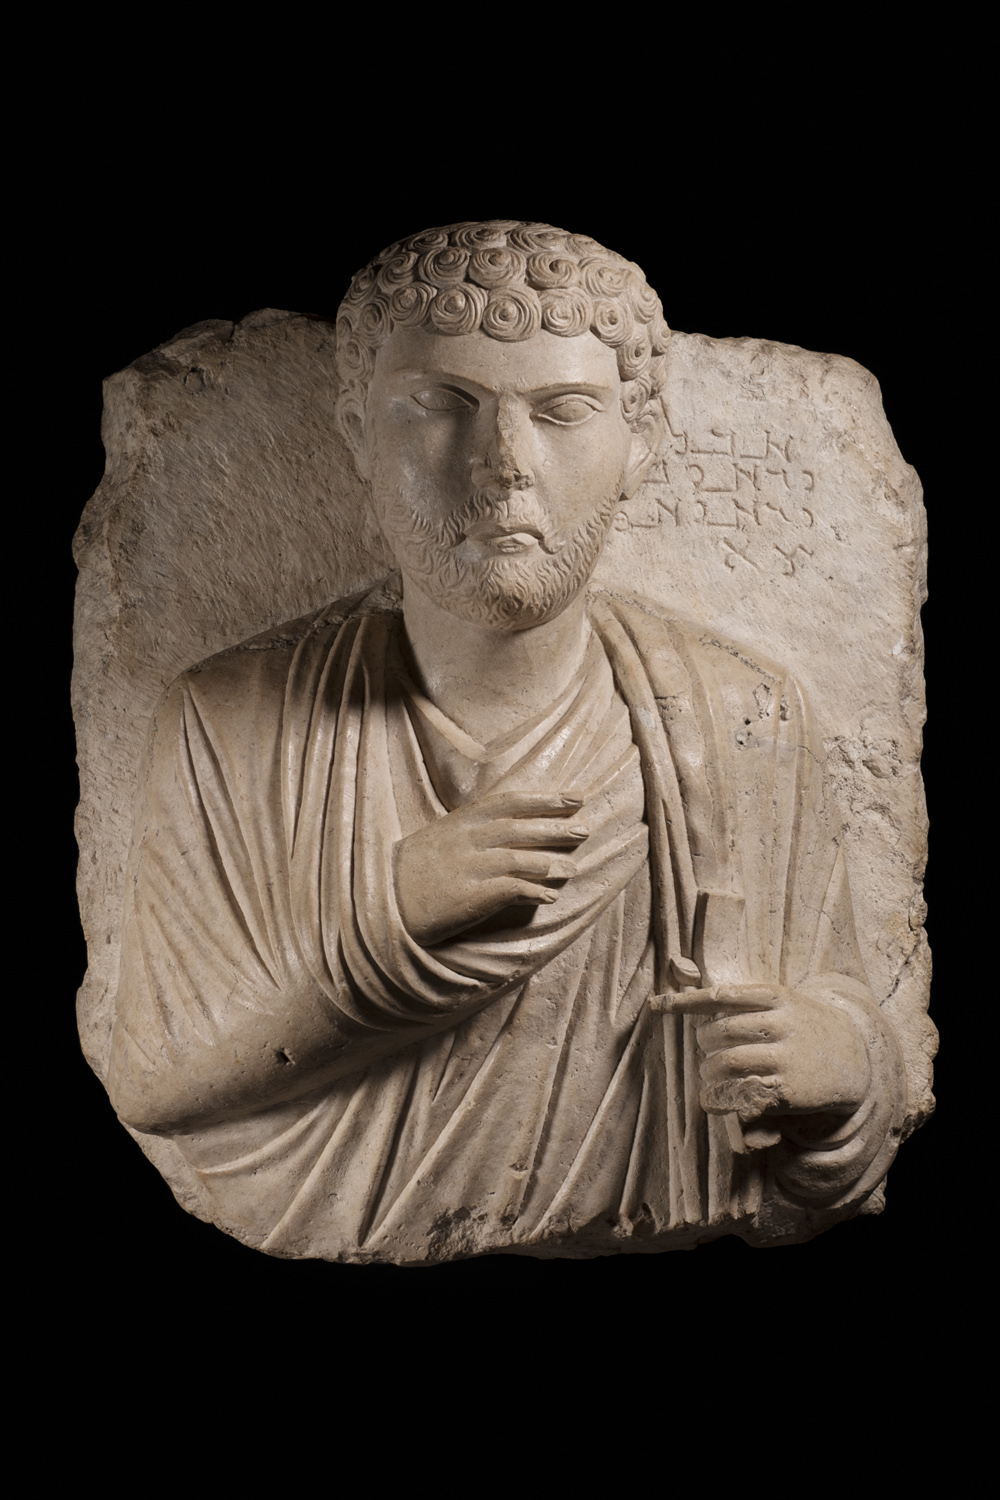 a limestone bust of a man in greco-roman clothes